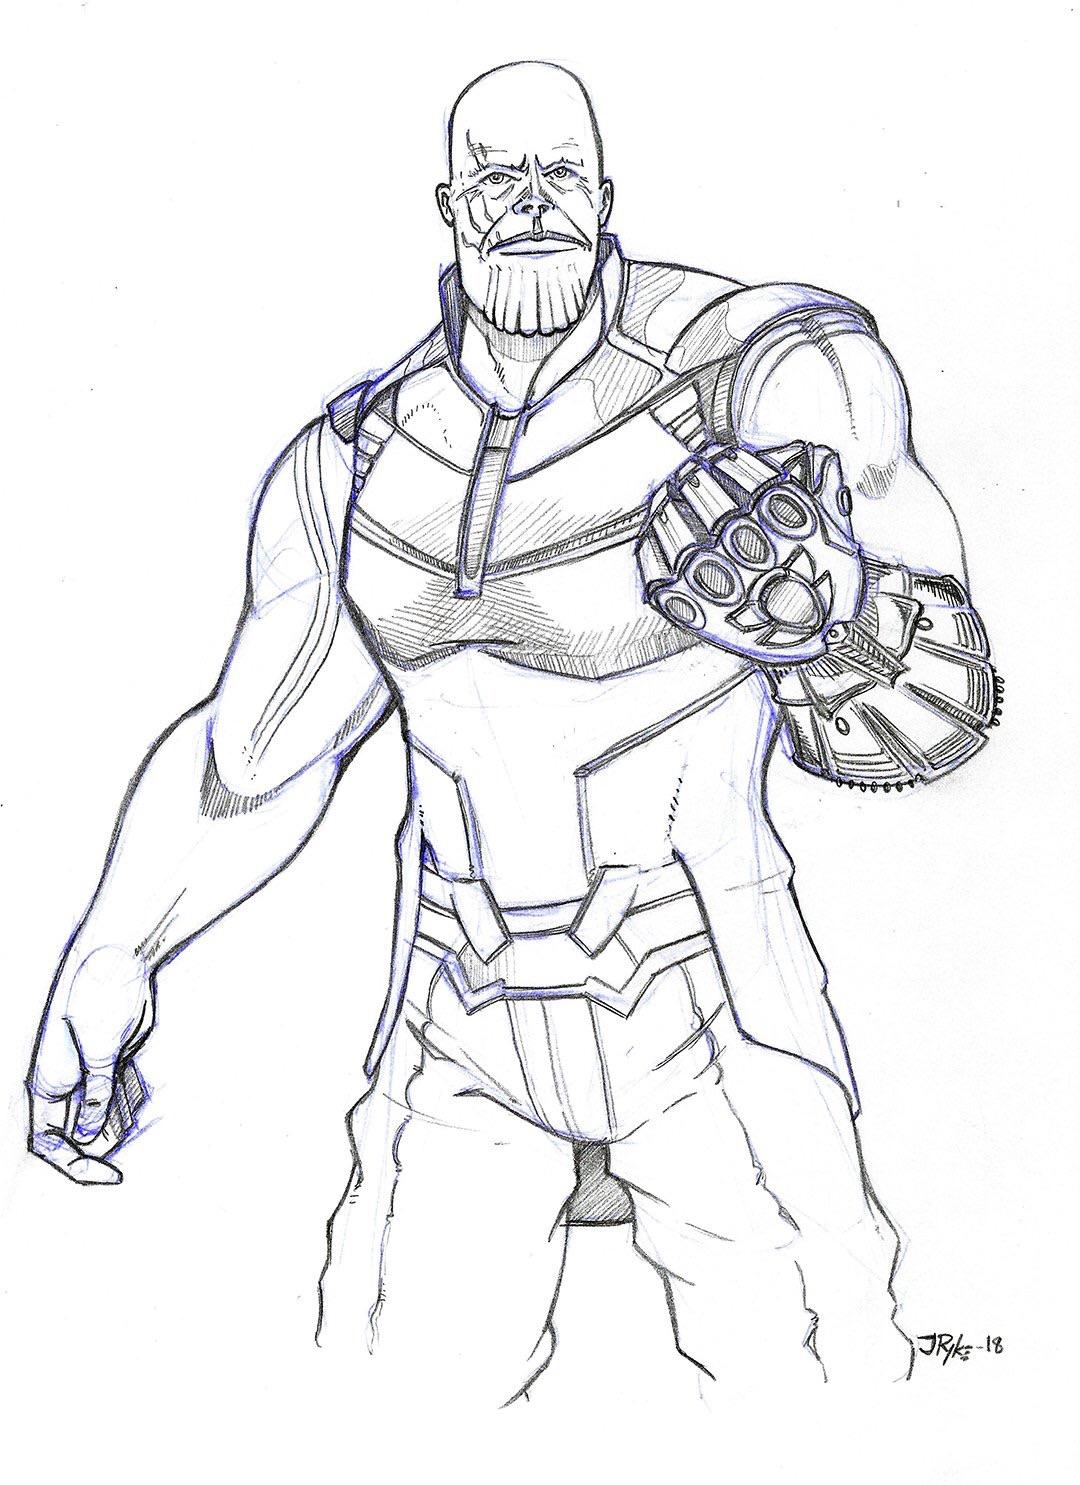 I Drew Thanos A Few Weeks Back While I Was Going Through